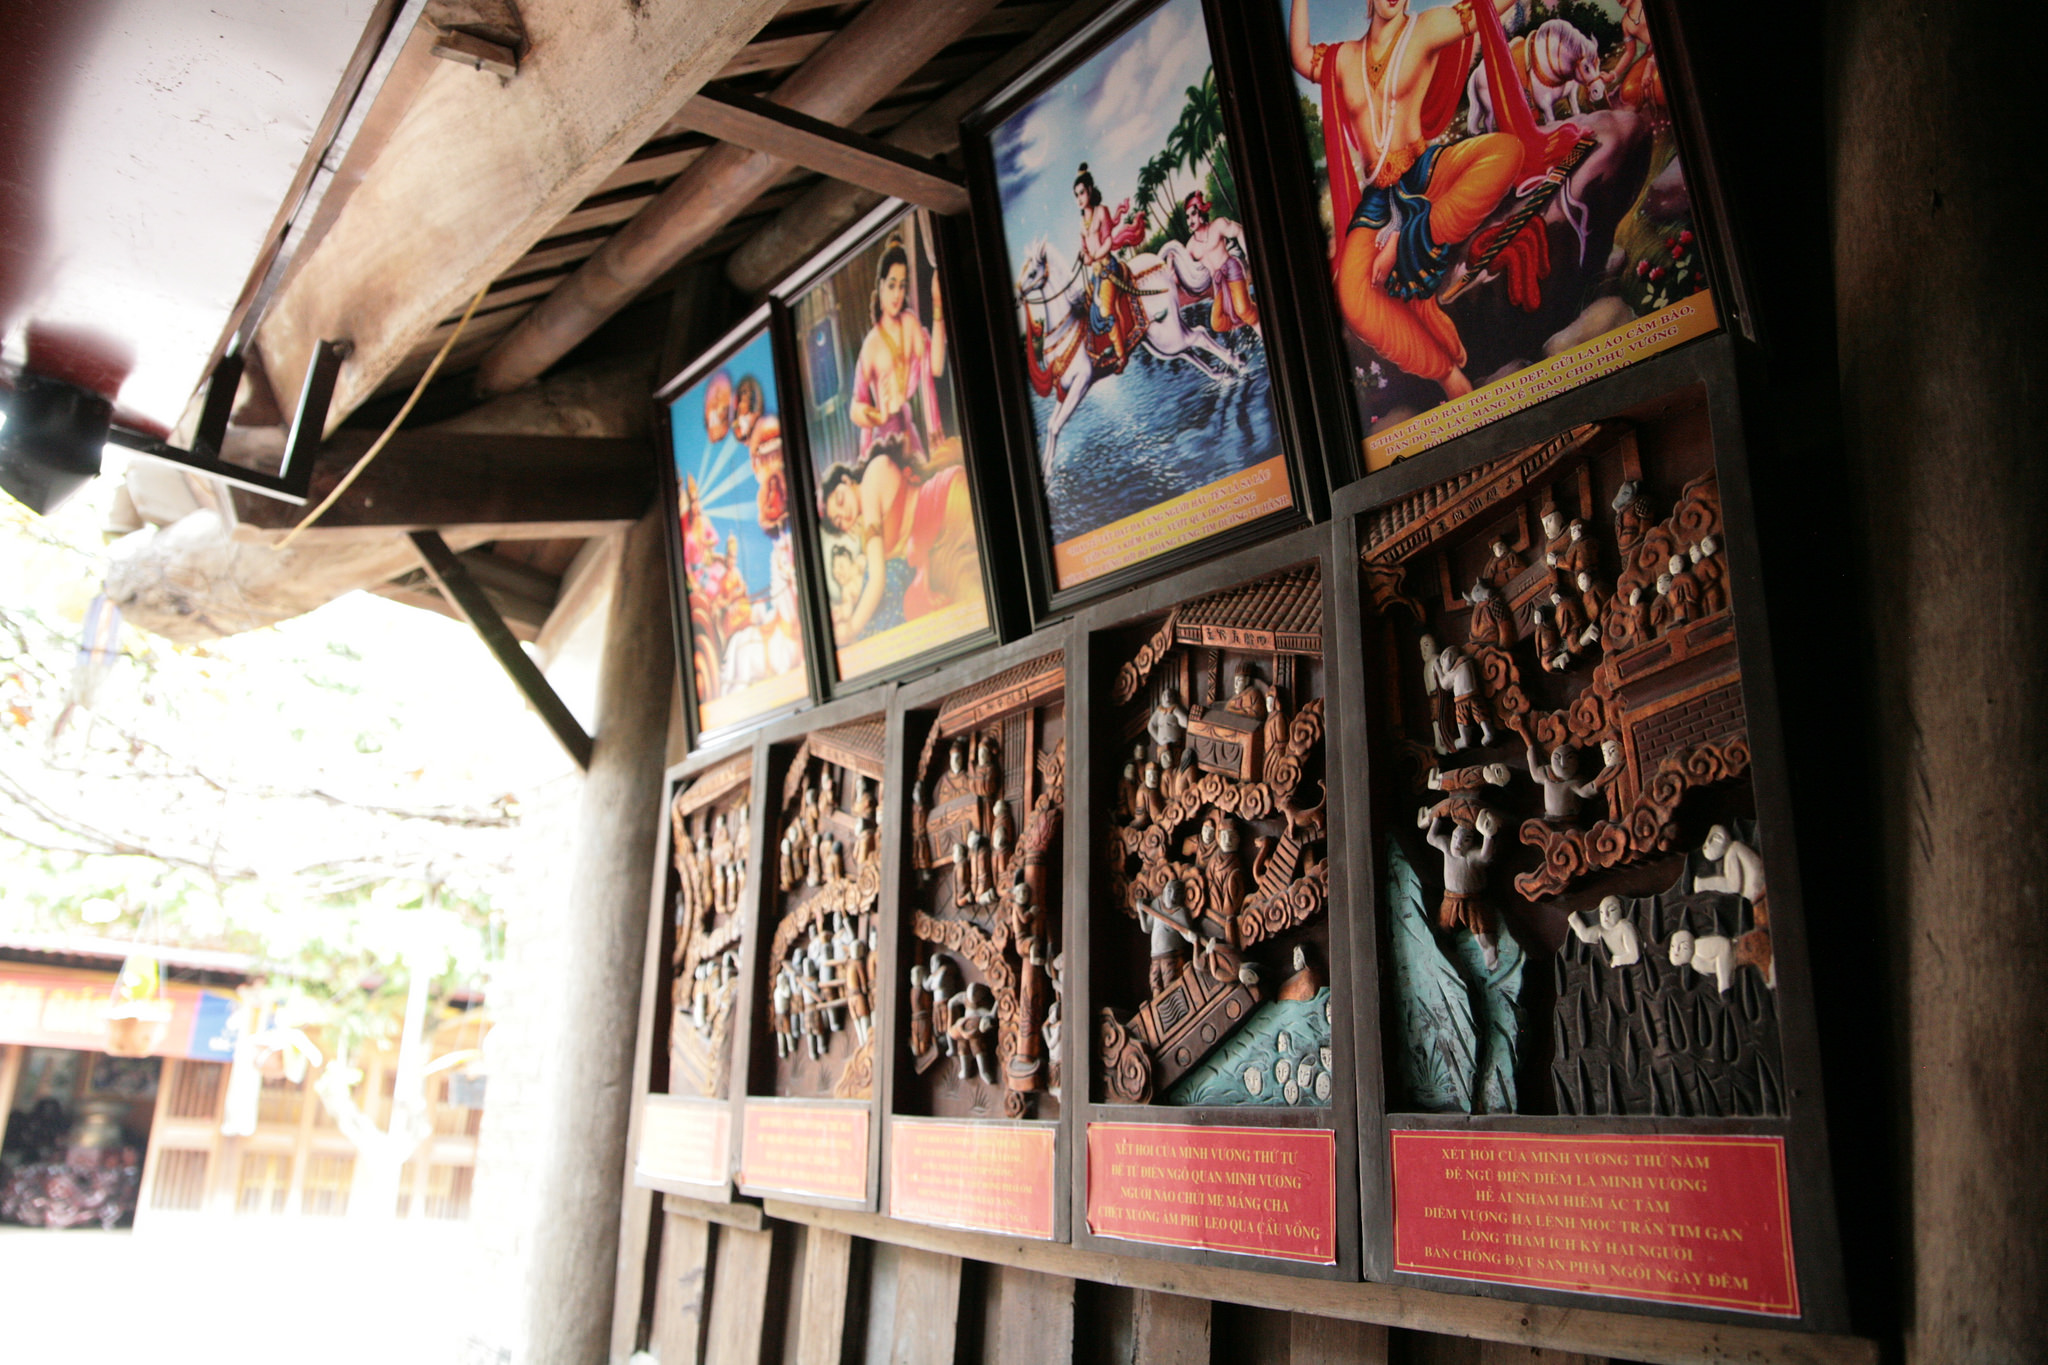 Decorative panels at Duc La Pagoda, Vietnam